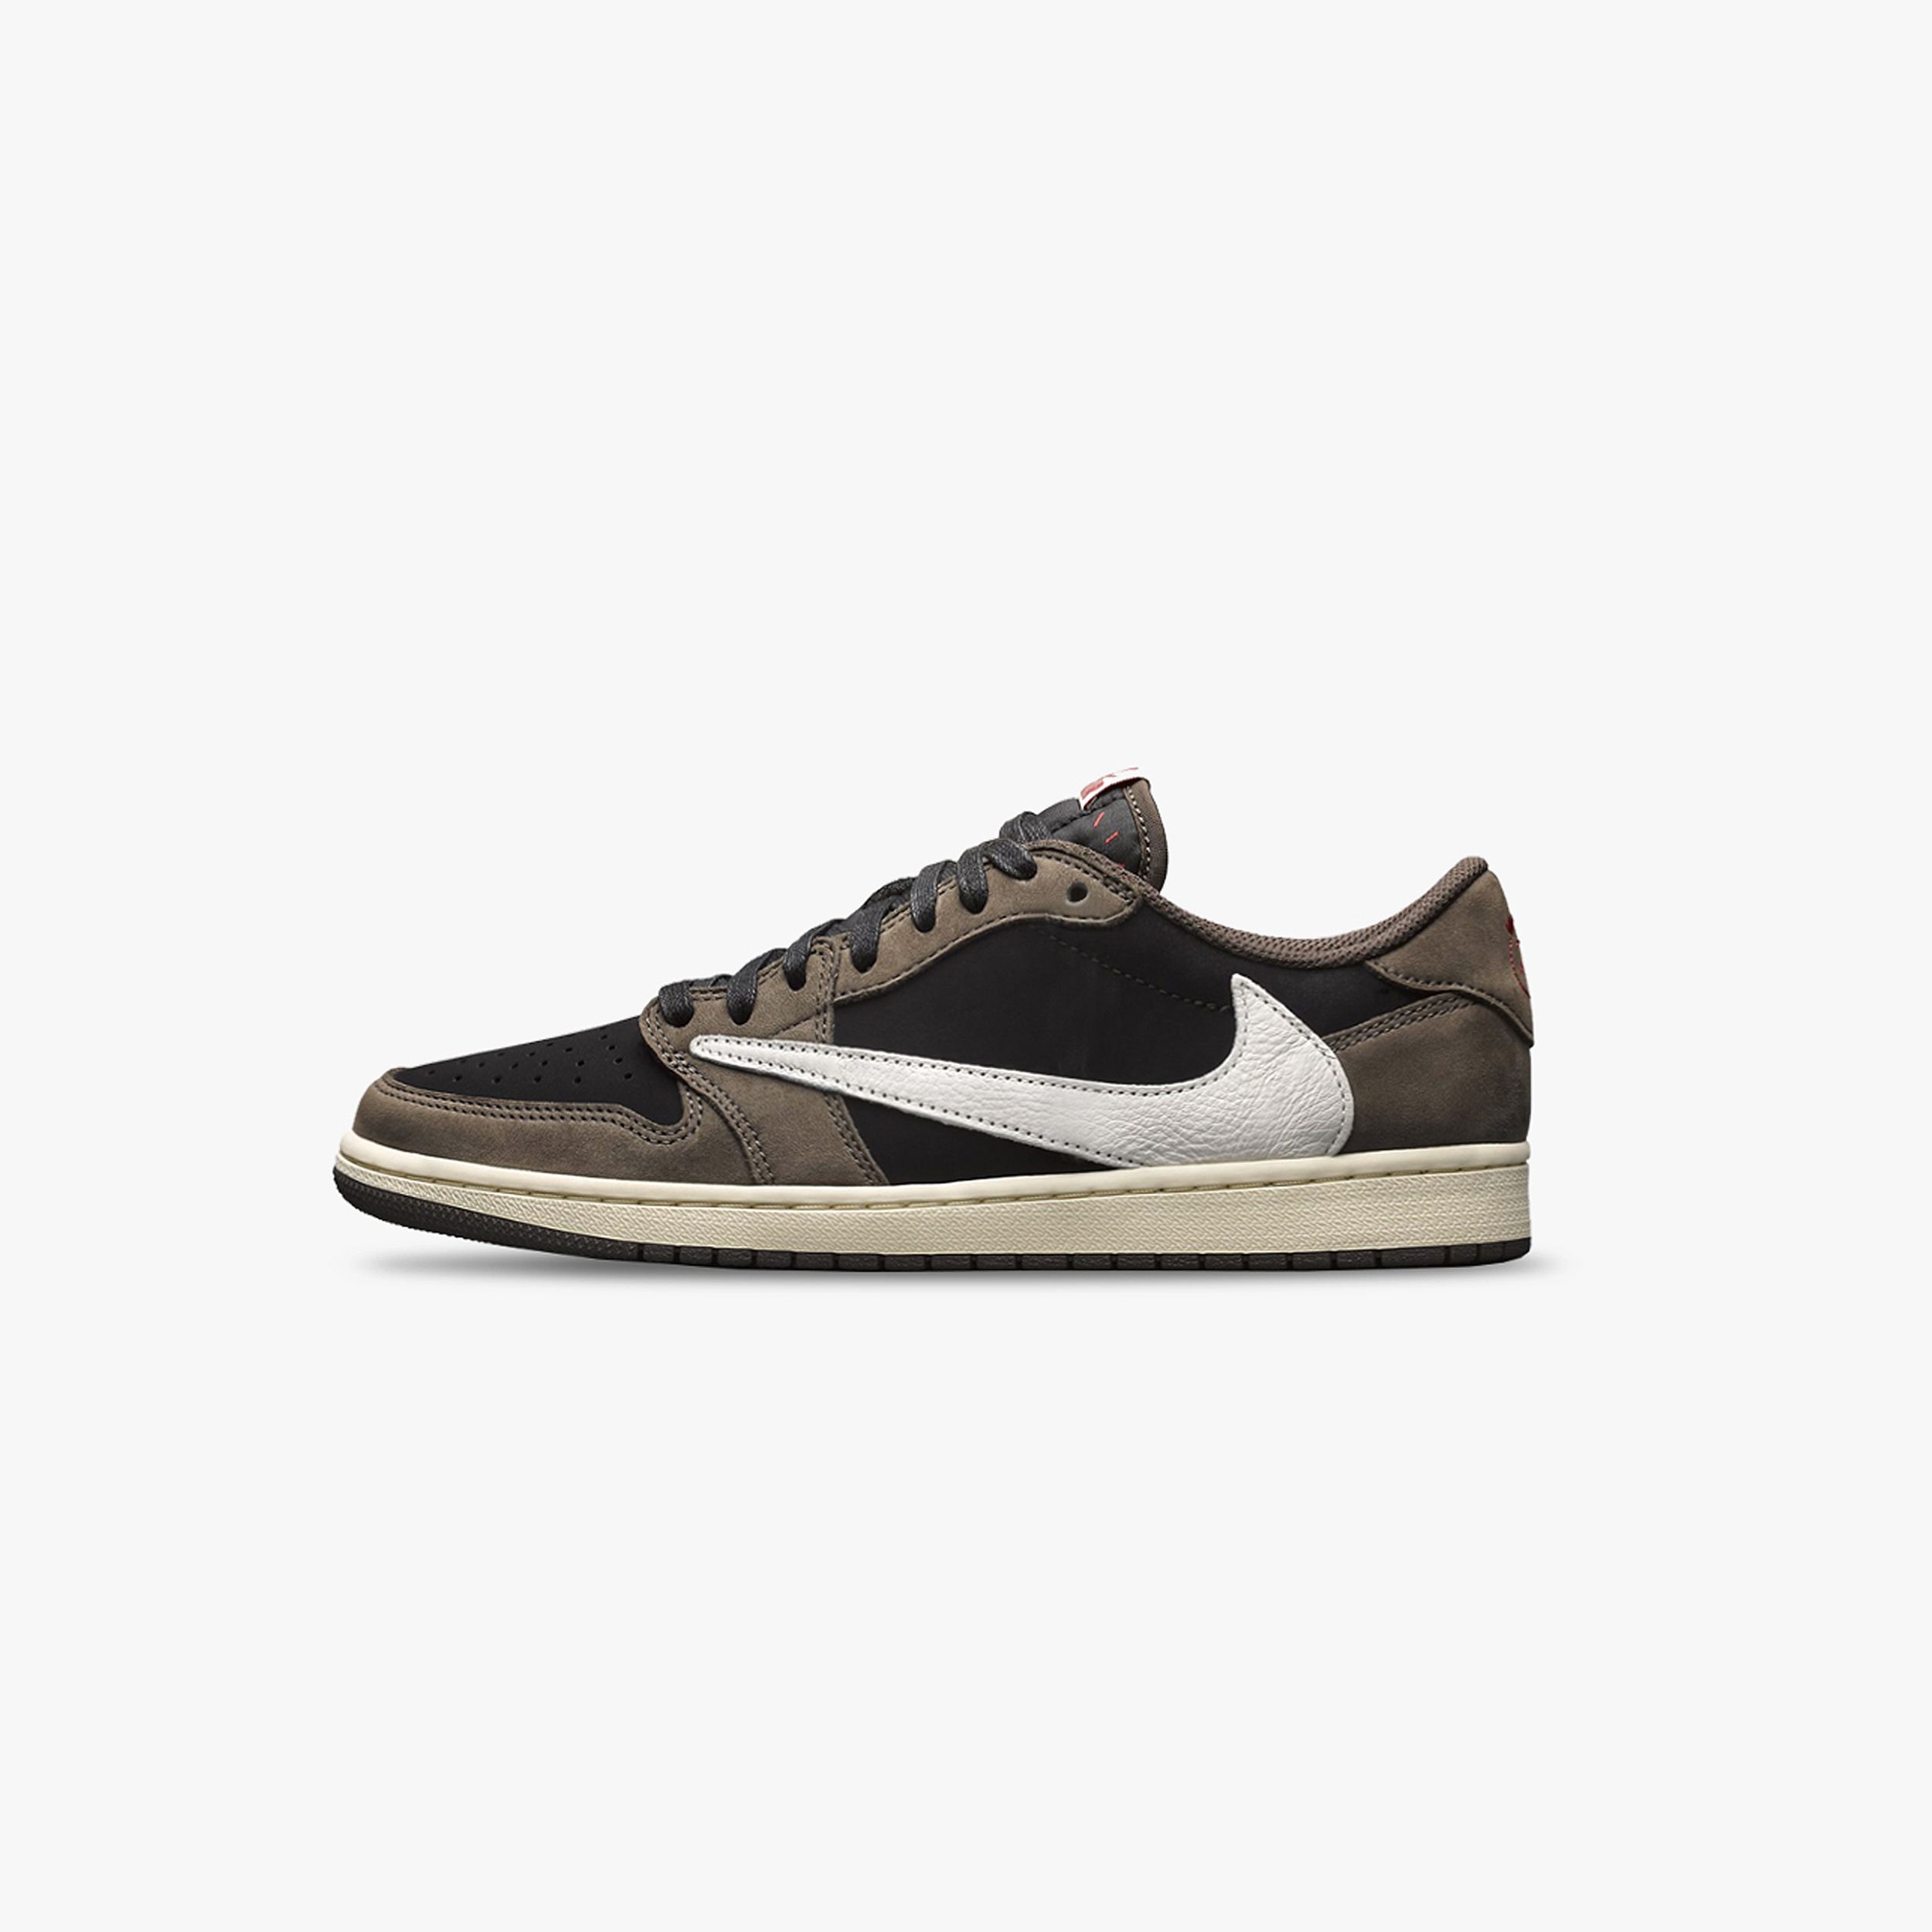 quality design 0d971 f3047 Air Jordan 1 Low Travis Scott